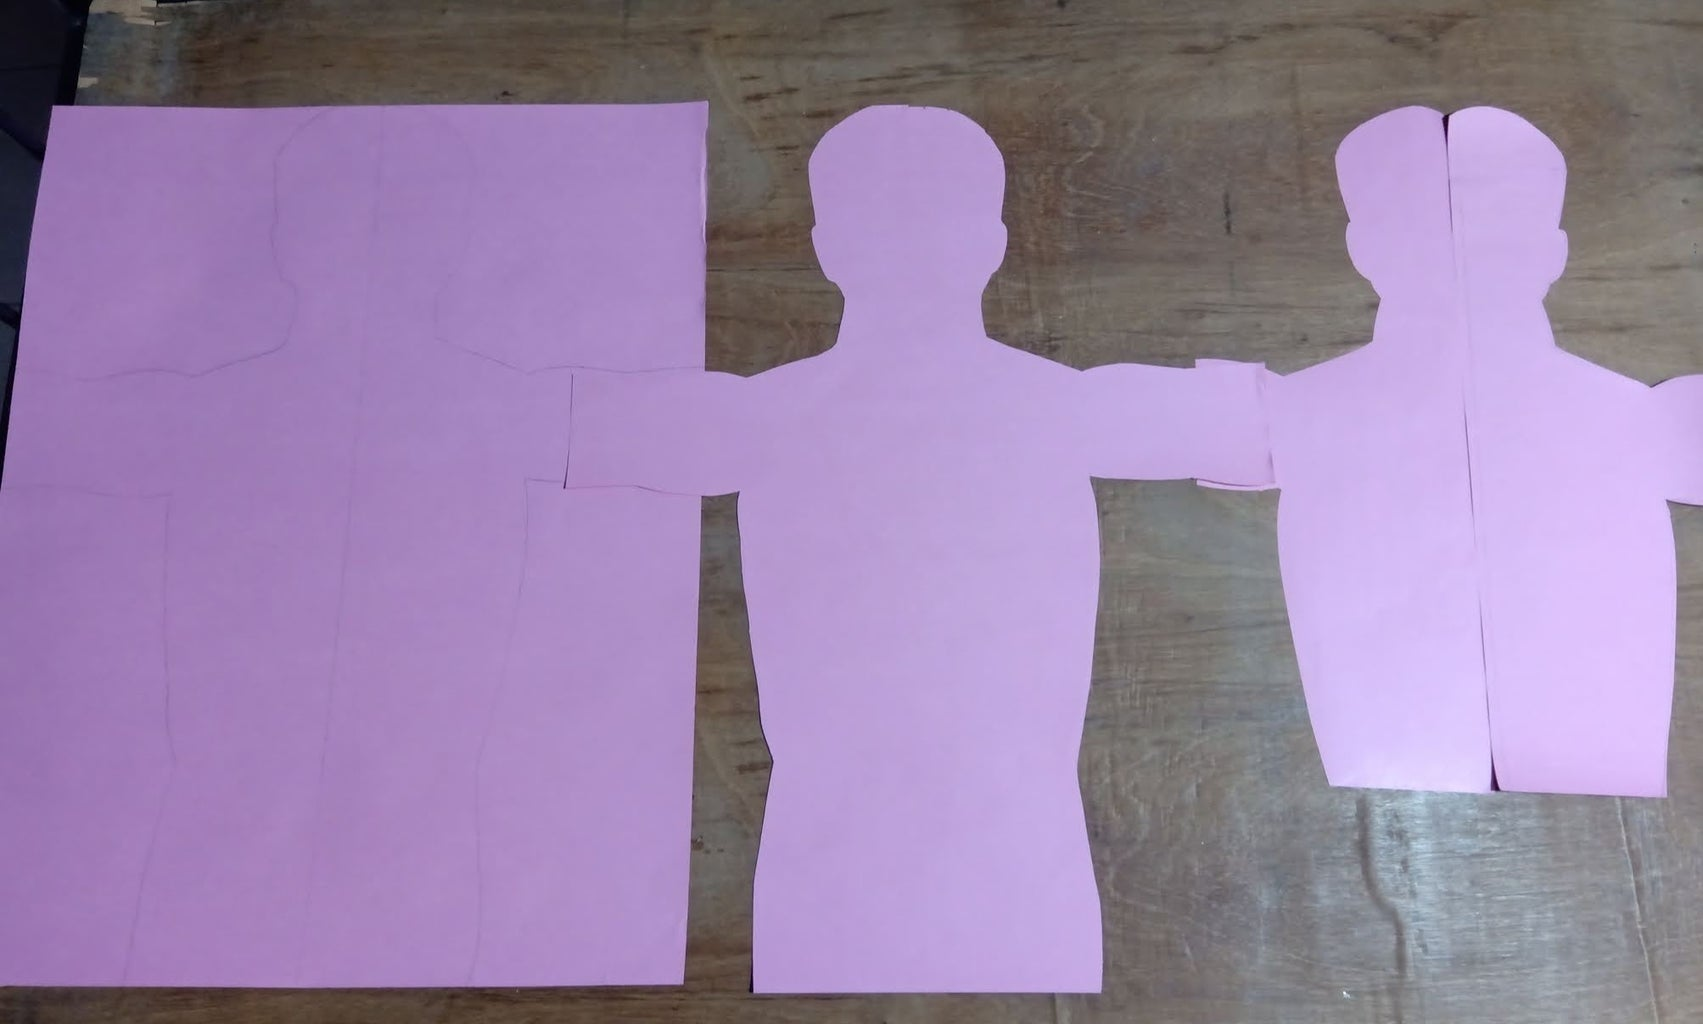 Outline for Layer 1, Layer 2, Layer 3